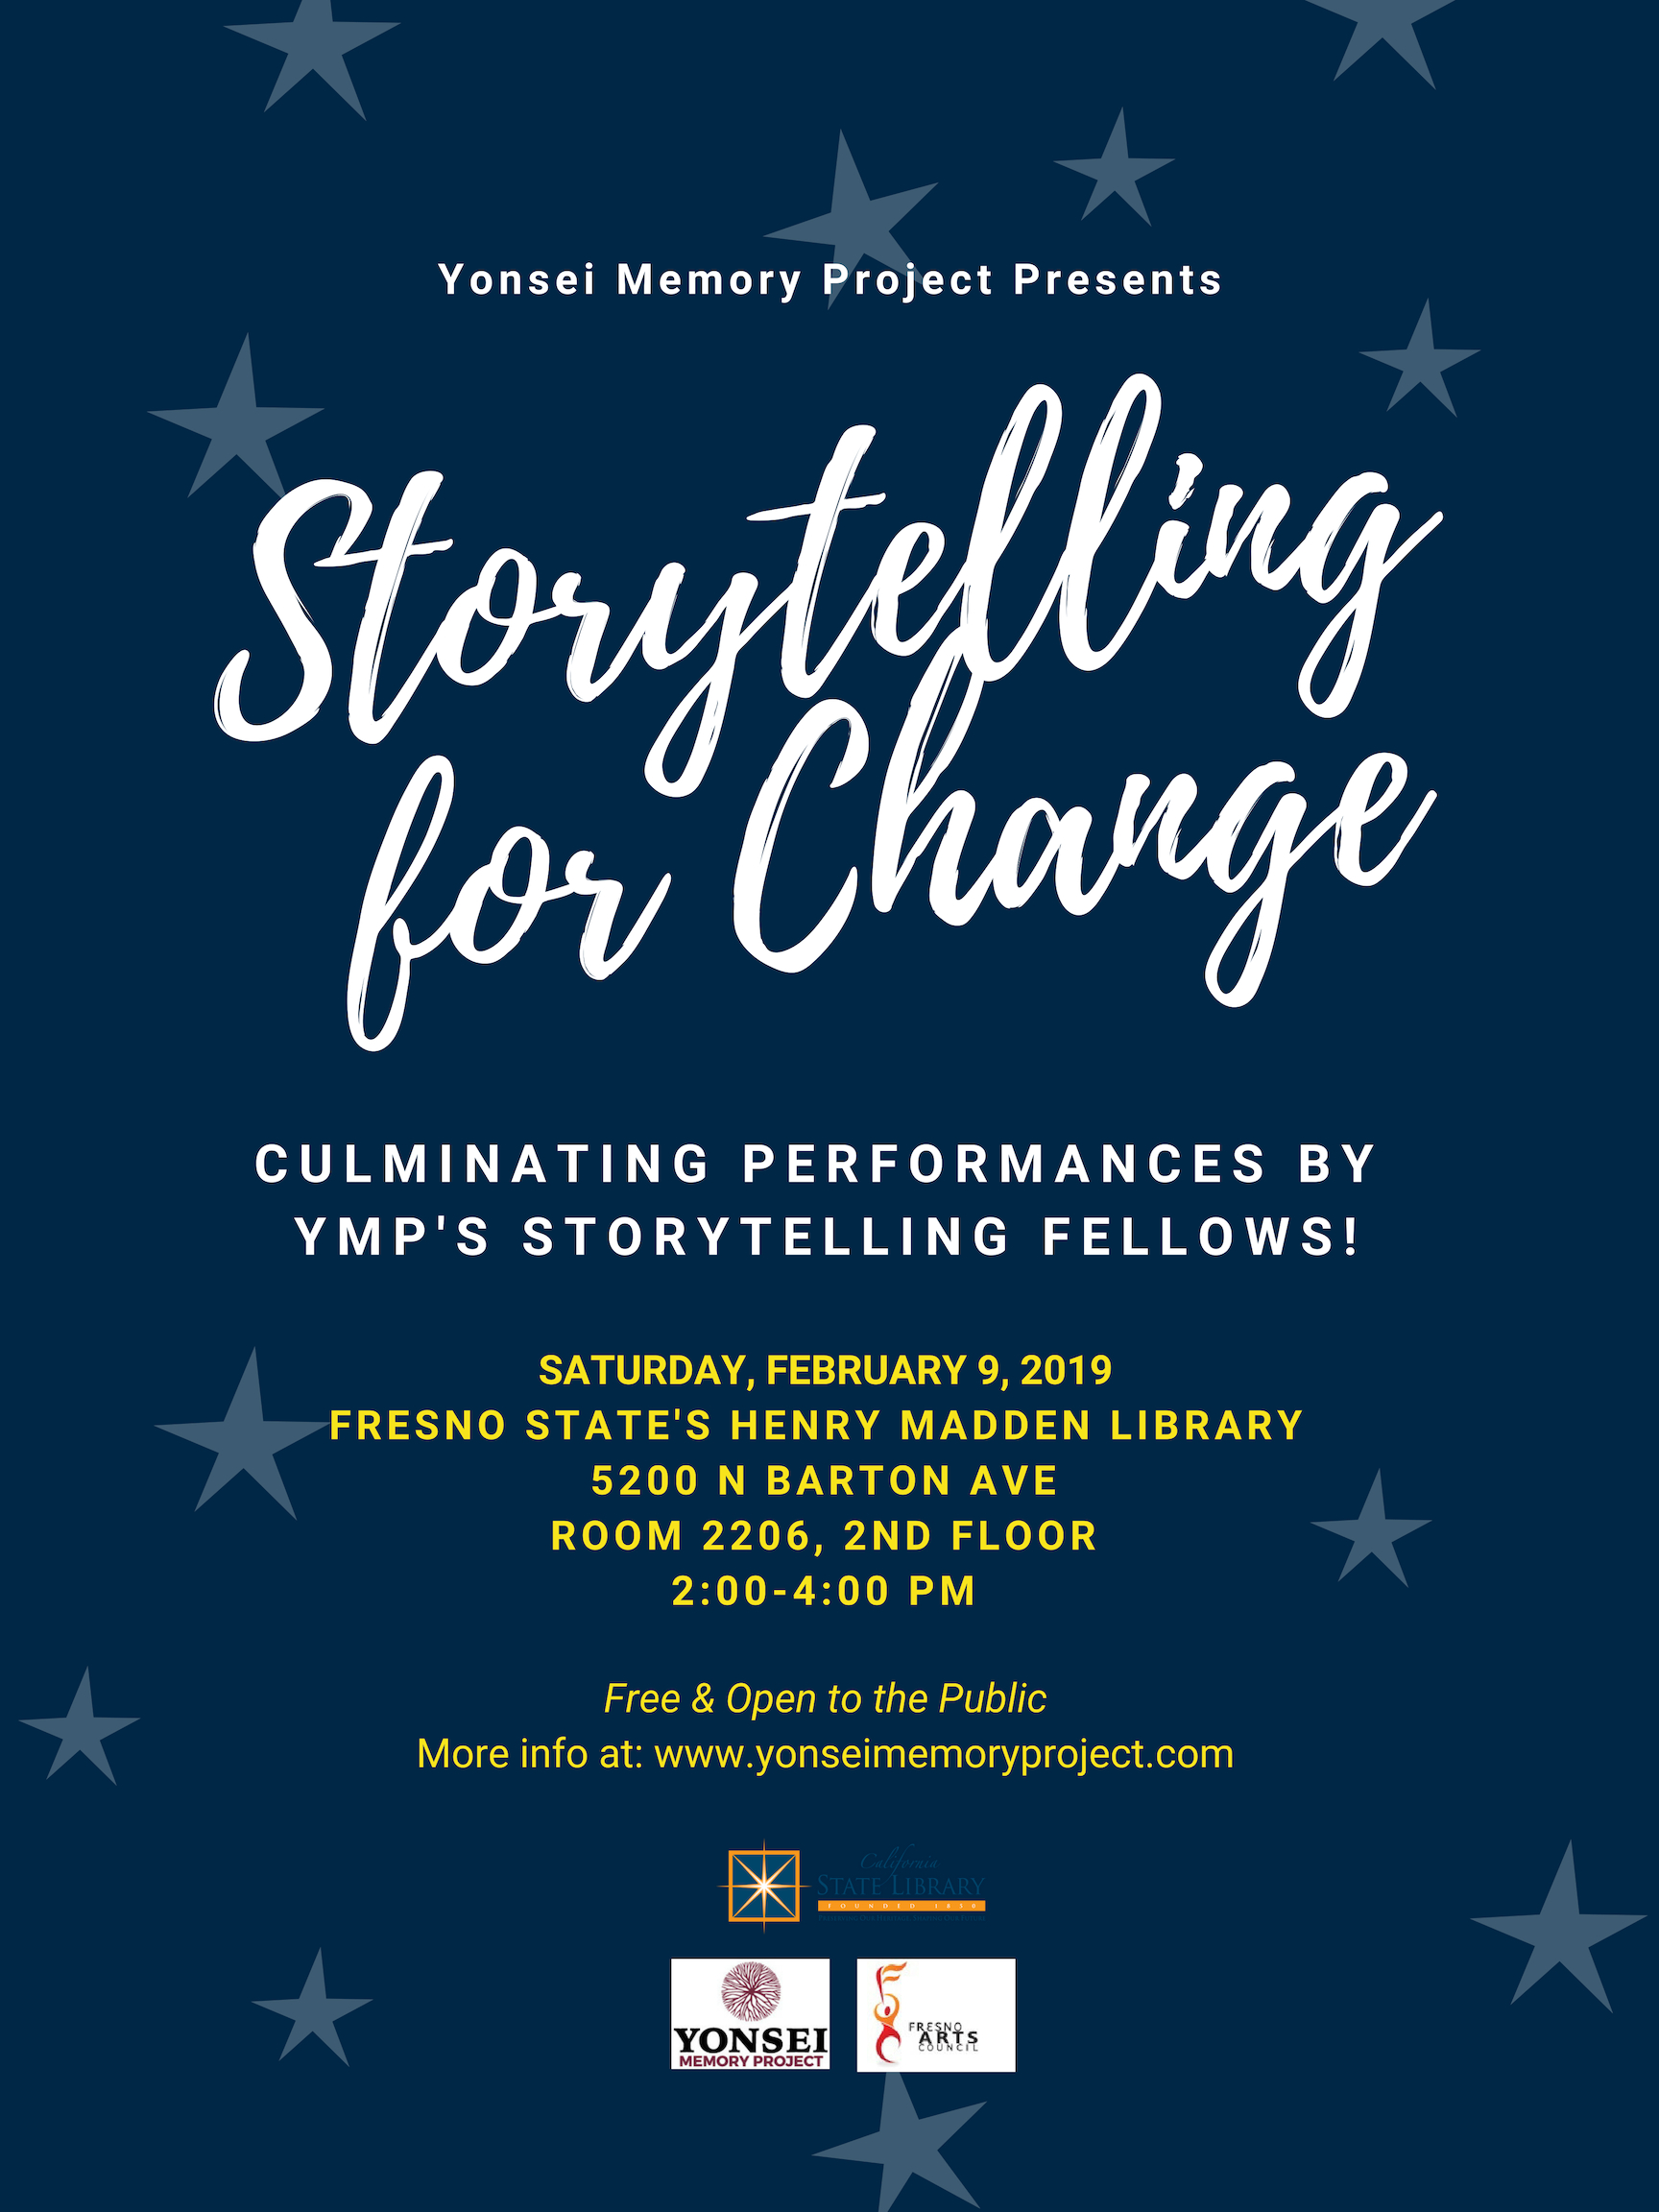 Image: Storytelling for Change event flyer for Feb 9, 2019, 2-4pm at the Henry Madden Library, Fresno State.